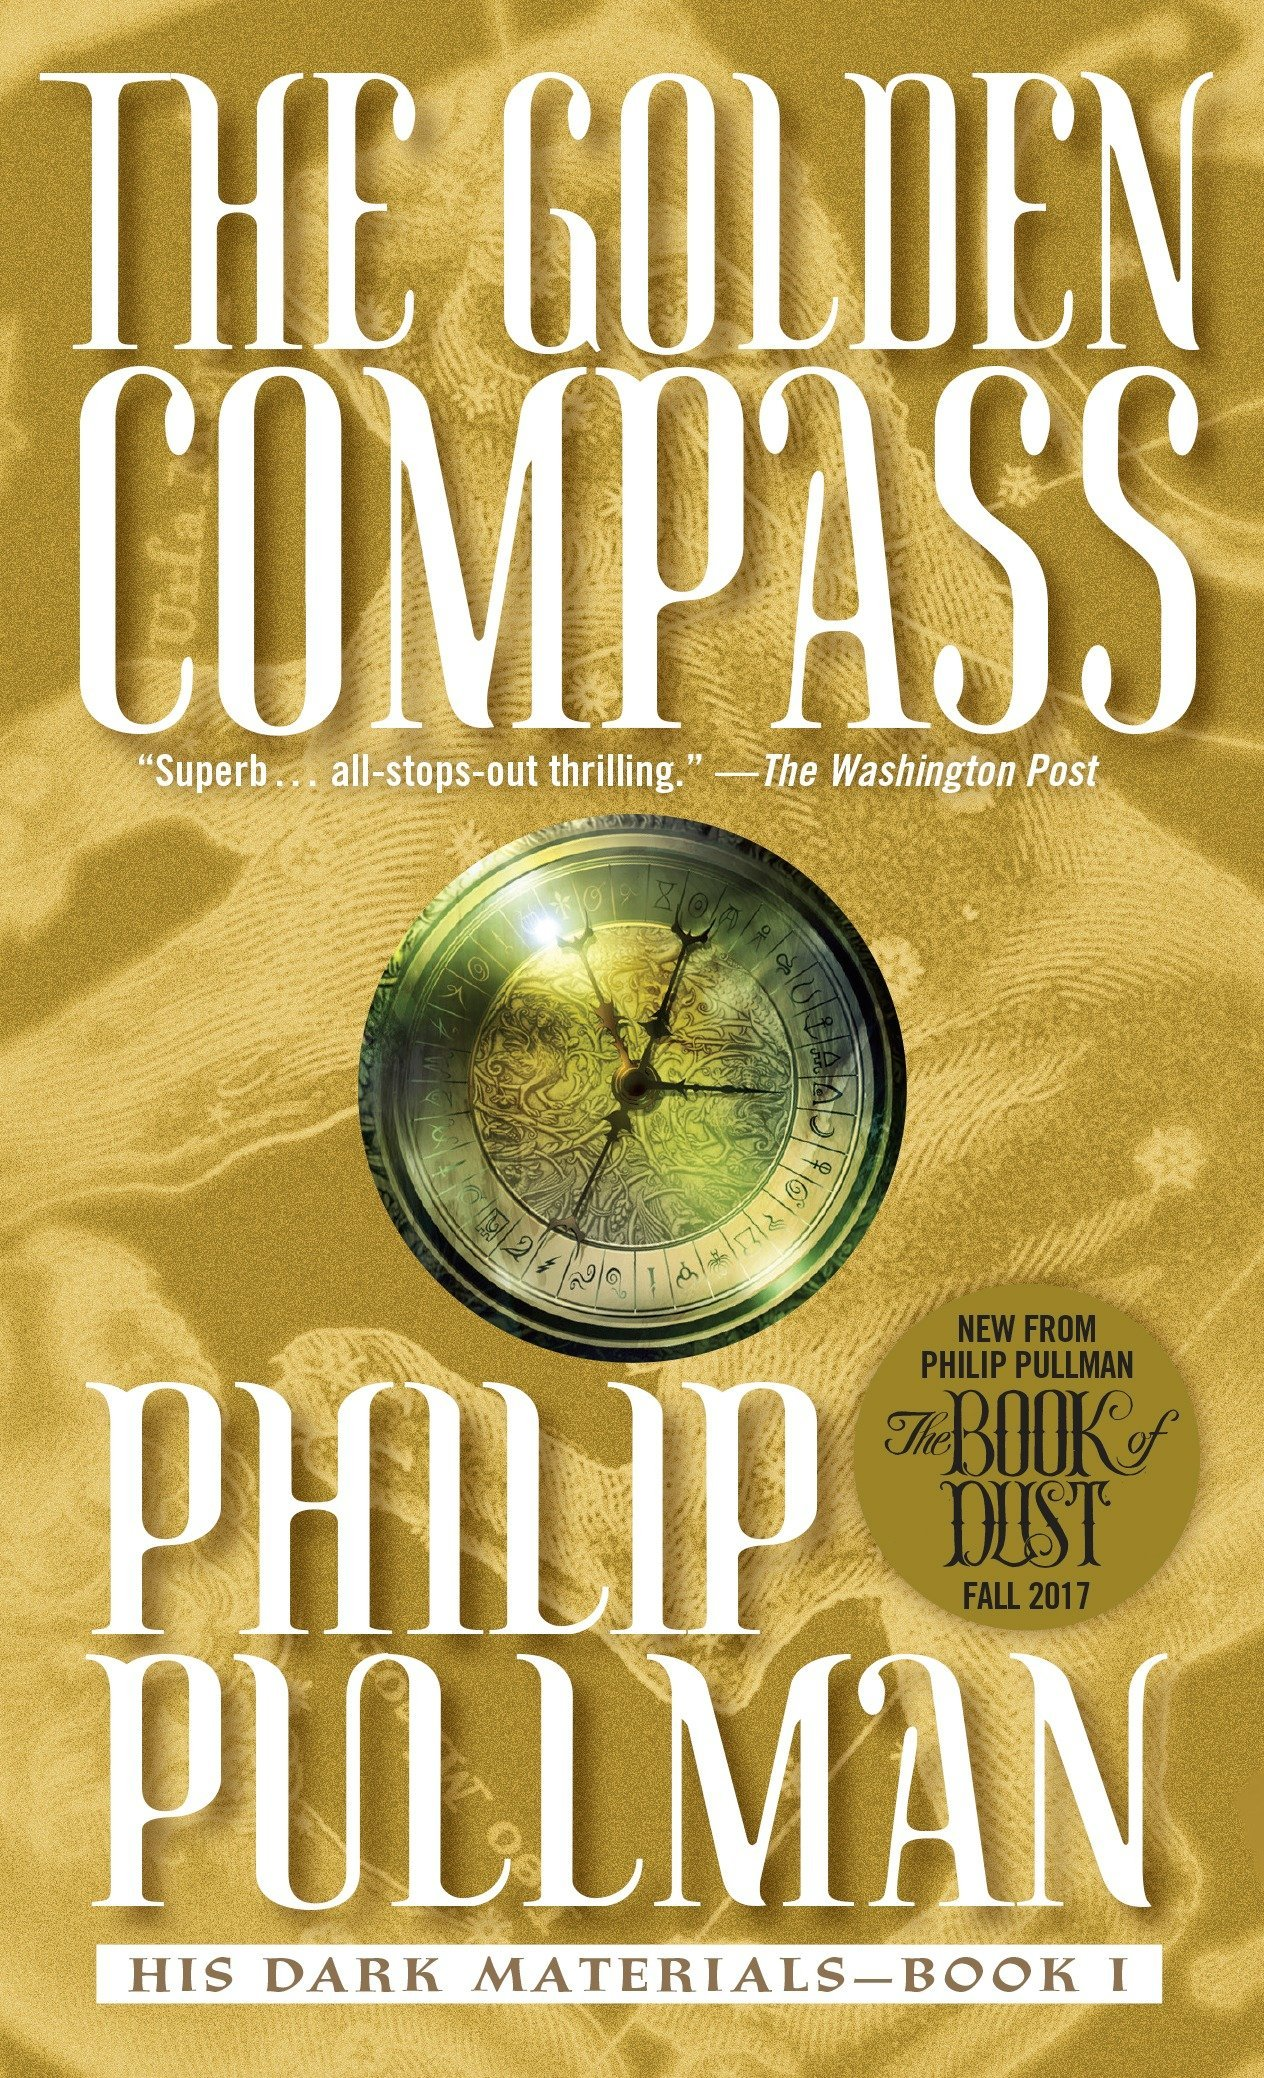 Golden compass pdf the philip pullman